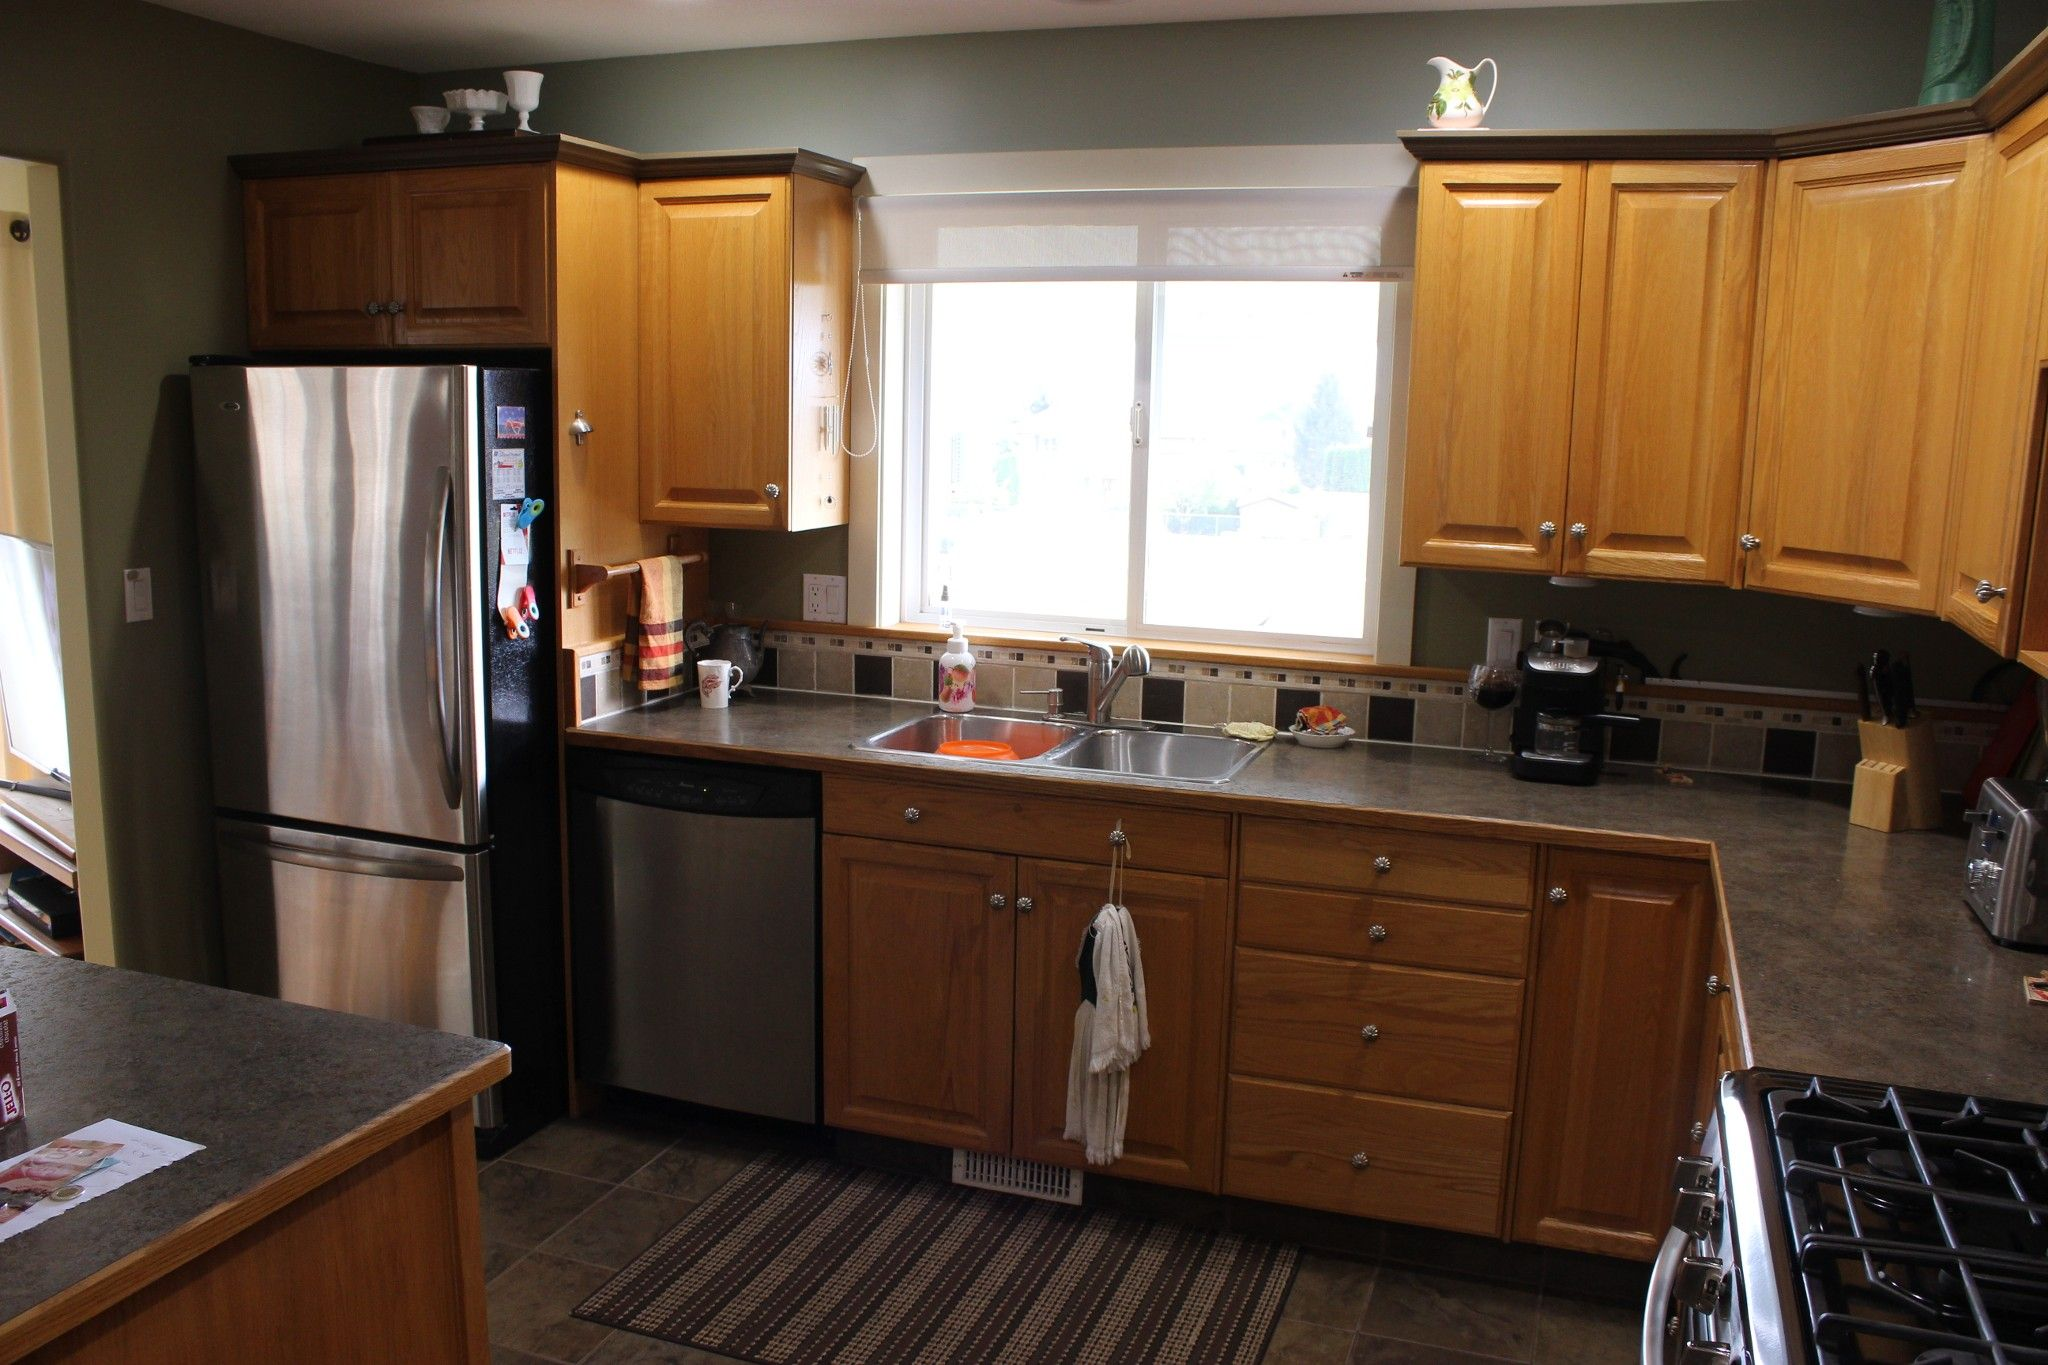 Photo 5: Photos: 3480 Navatanee Drive in Kamloops: South Thompson Valley House for sale : MLS®# 148627